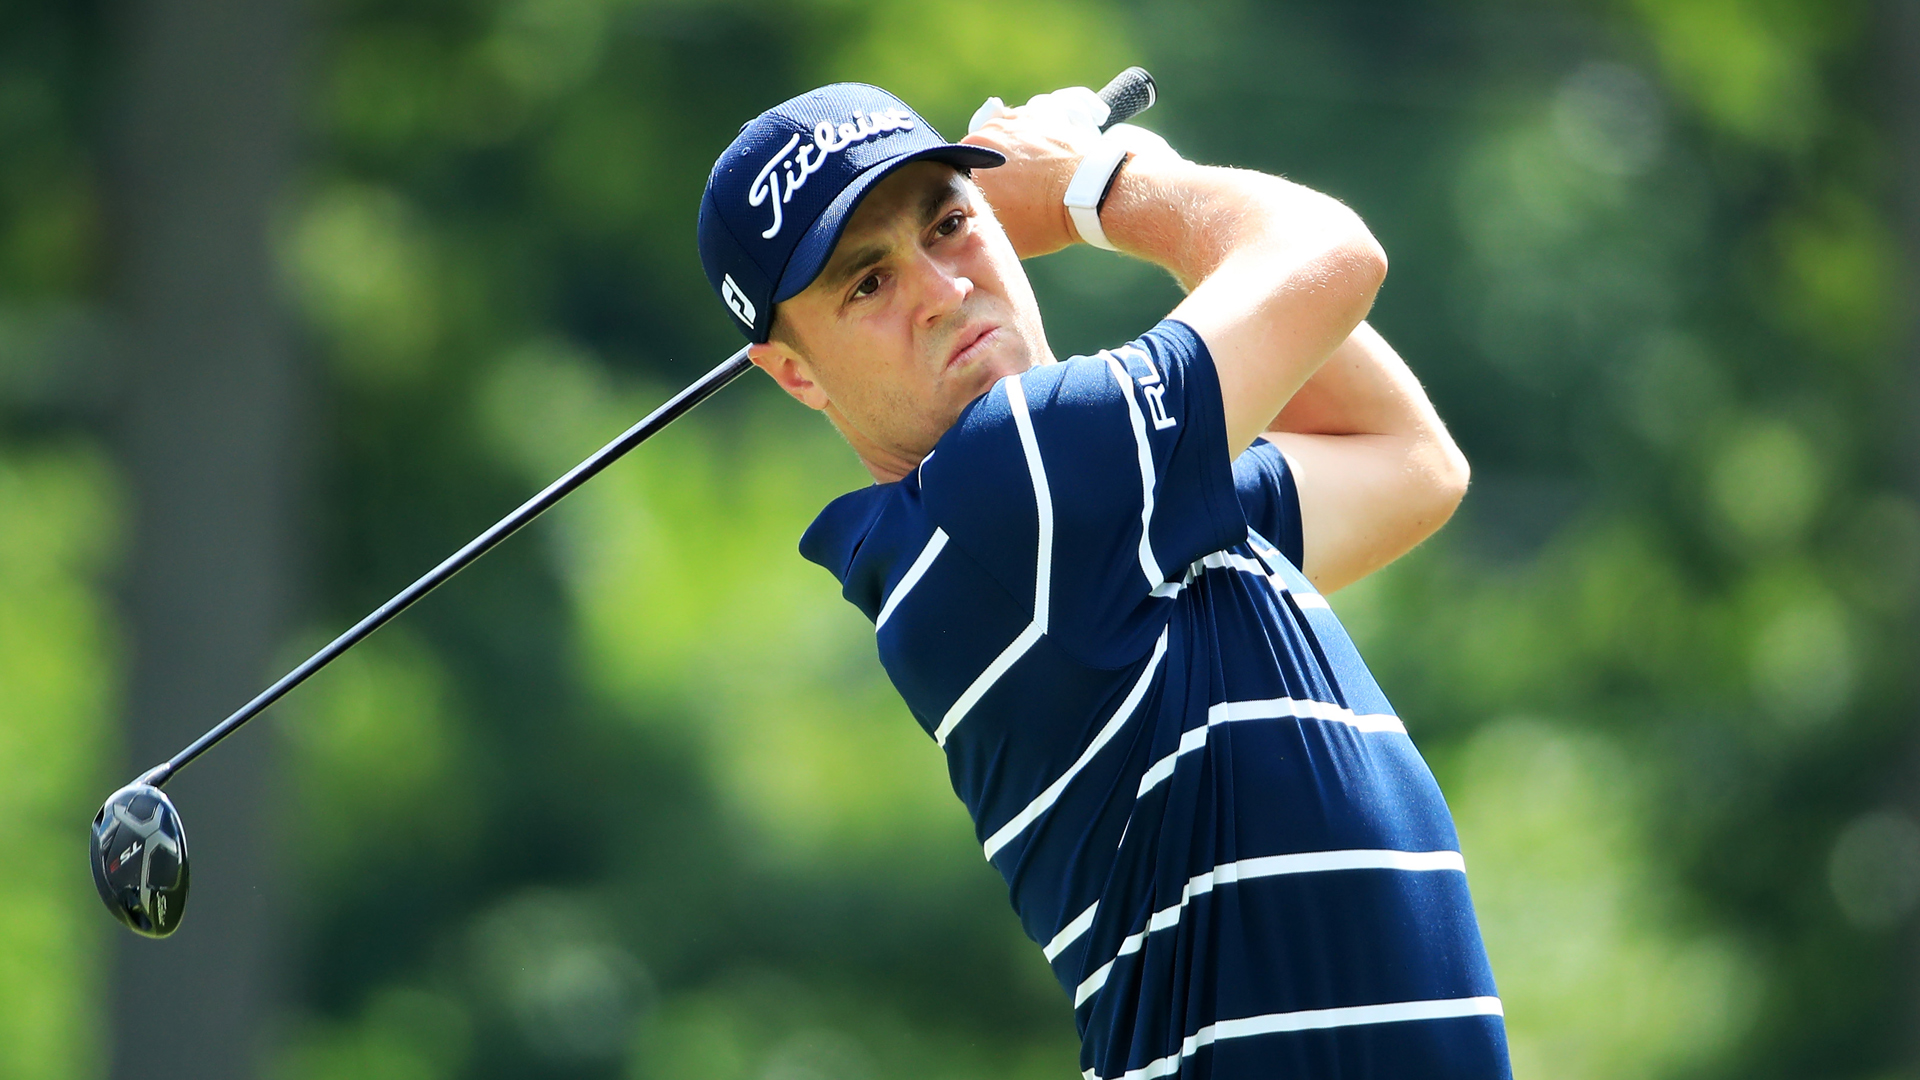 Thomas shares lead at Medinah as Tiger, Spieth sit well back